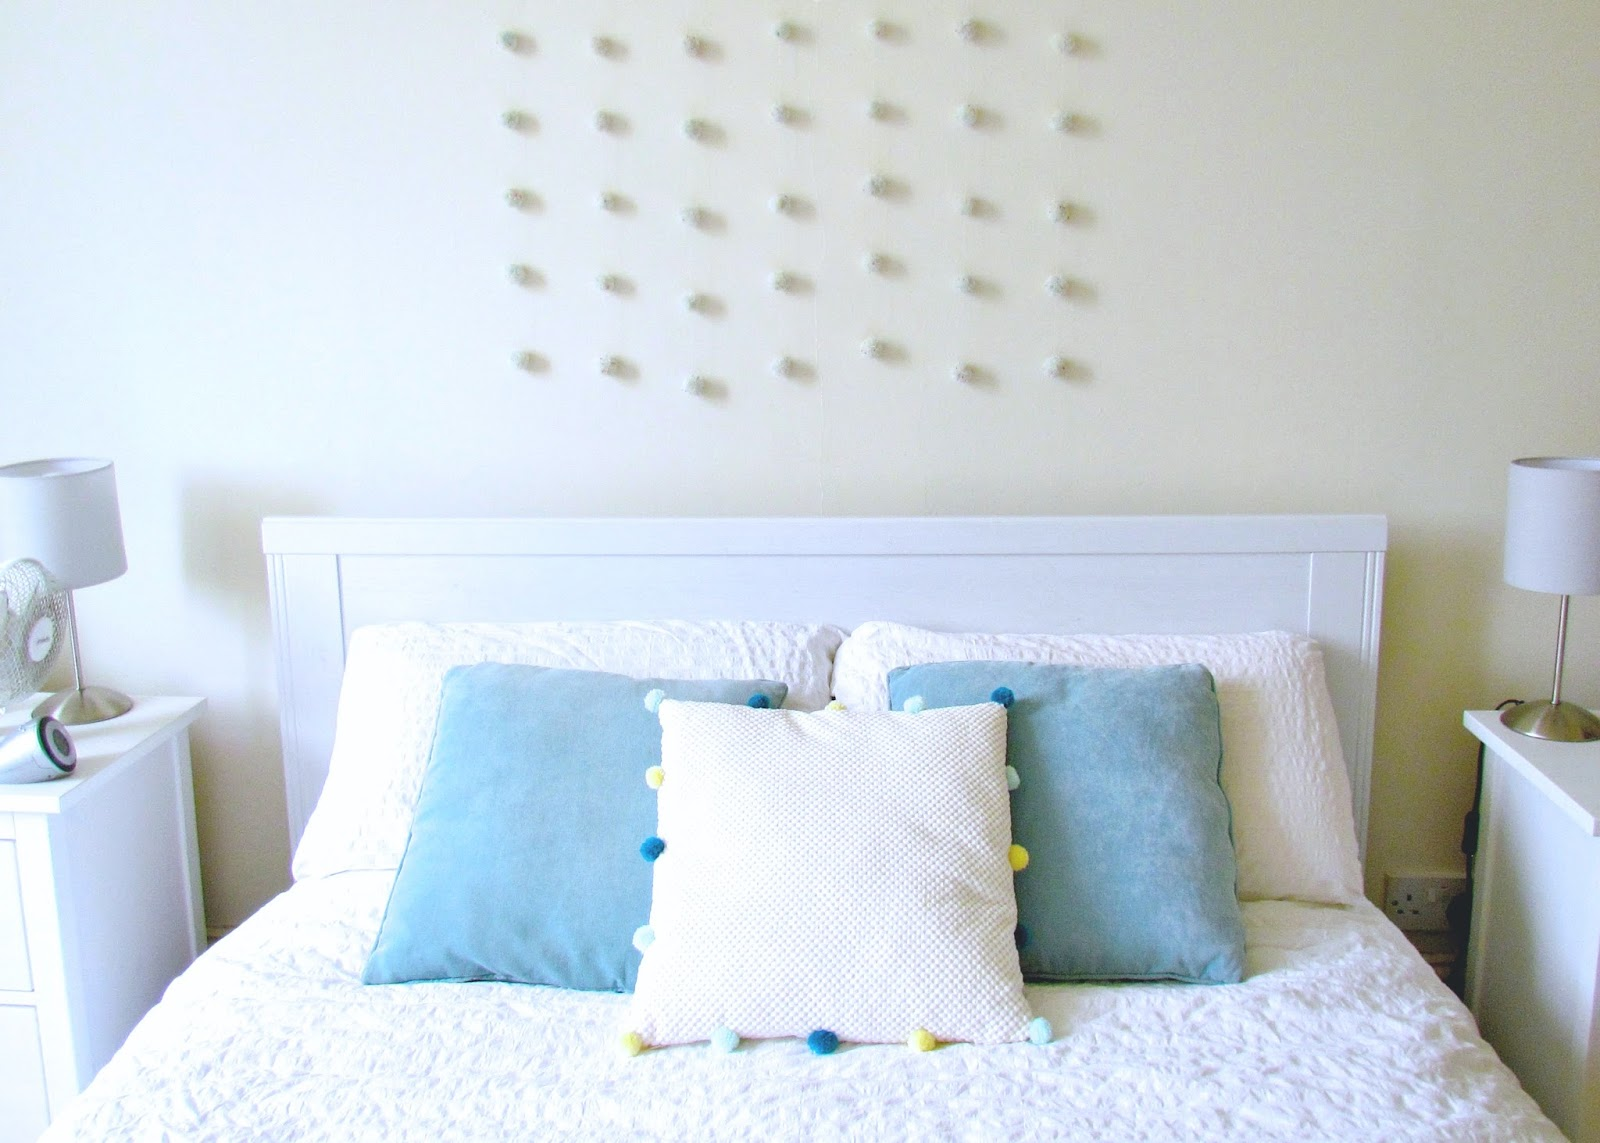 DIY pom pom wall hanging by Isoscella